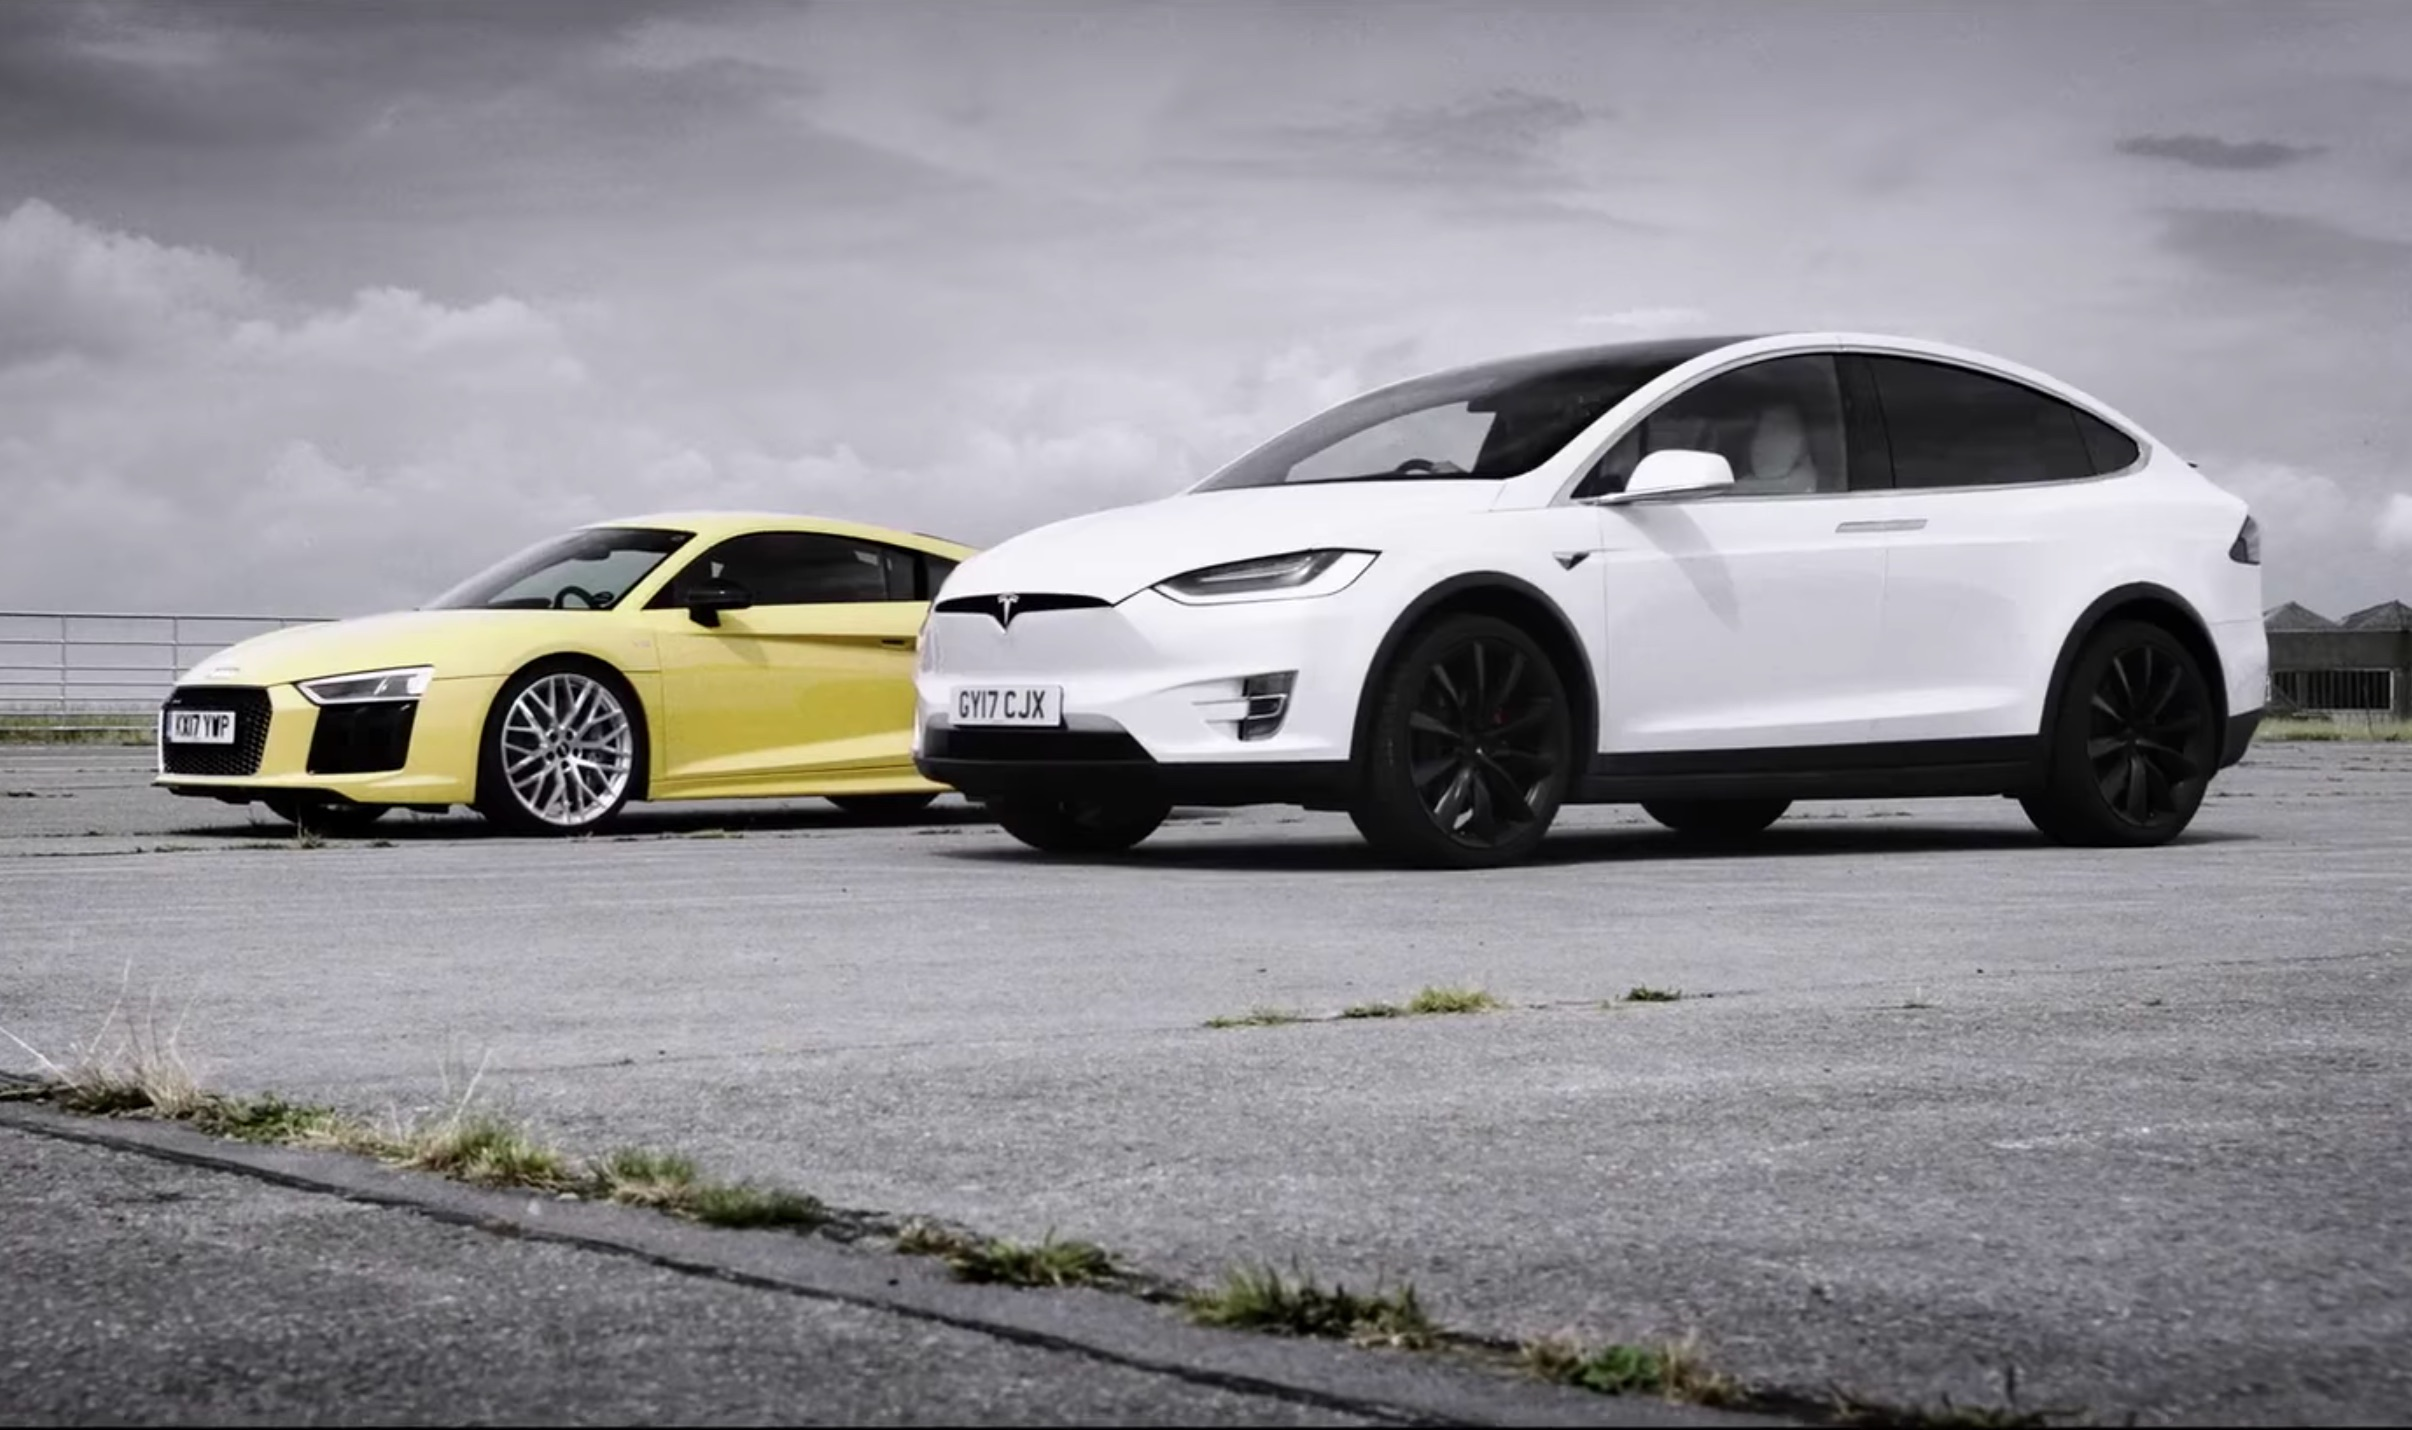 jeremy-clarkson-grand-tour-tesla-model-x-drag-race